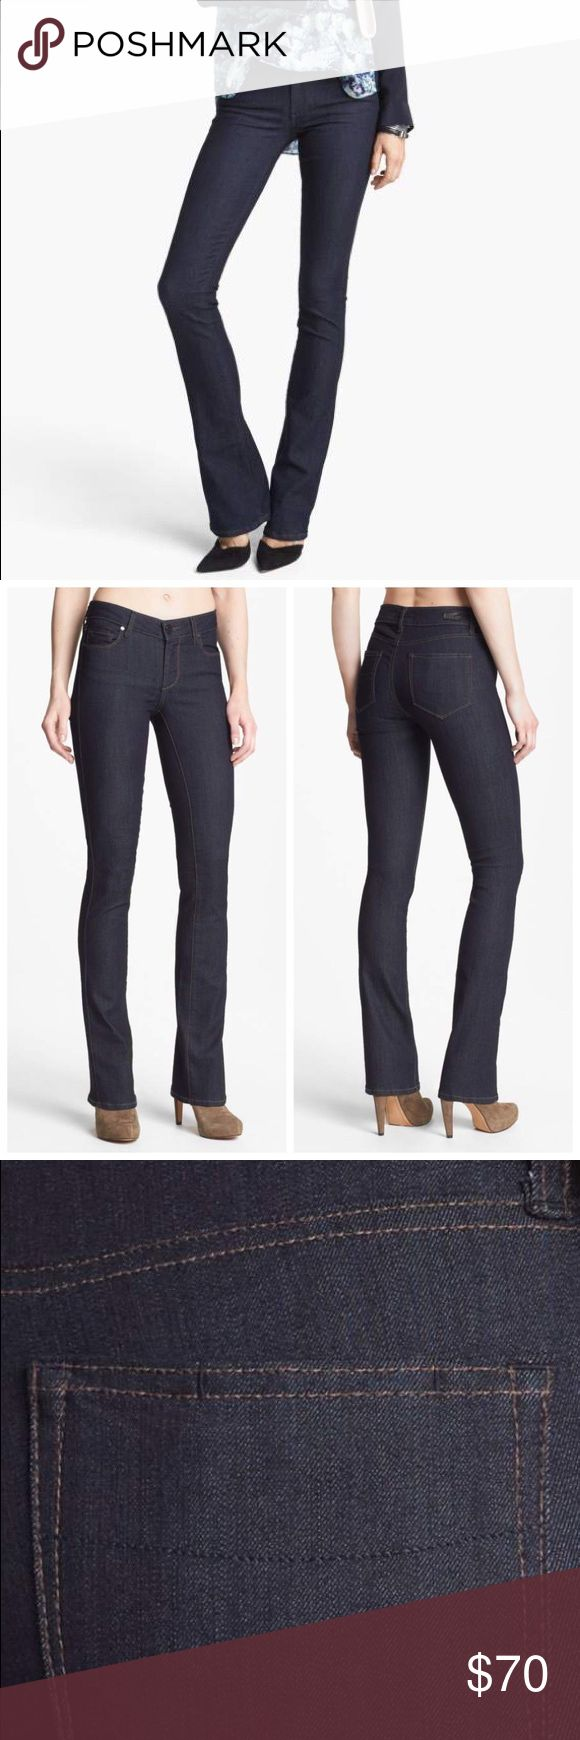 """PAIGE Denim 'Manhattan' Baby Bootcut Jeans Denim 'Manhattan' Baby Bootcut Jeans PAIGE 29 with a 33 1/2"""" inseam A rich dark wash and tonal stitching polish a pair of sleek jeans accentuated with classic bootcut legs. 33 1/2"""" inseam; 17 1/2"""" leg opening; 8 1/4"""" front rise; 12"""" back rise. Zip fly with button closure. Five-pocket style. Dark dye may transfer to lighter materials. Cotton/polyester/spandex; machine wash. By Paige Denim; made in the USA of imported fabric. PAIGE Jeans Boot Cut"""